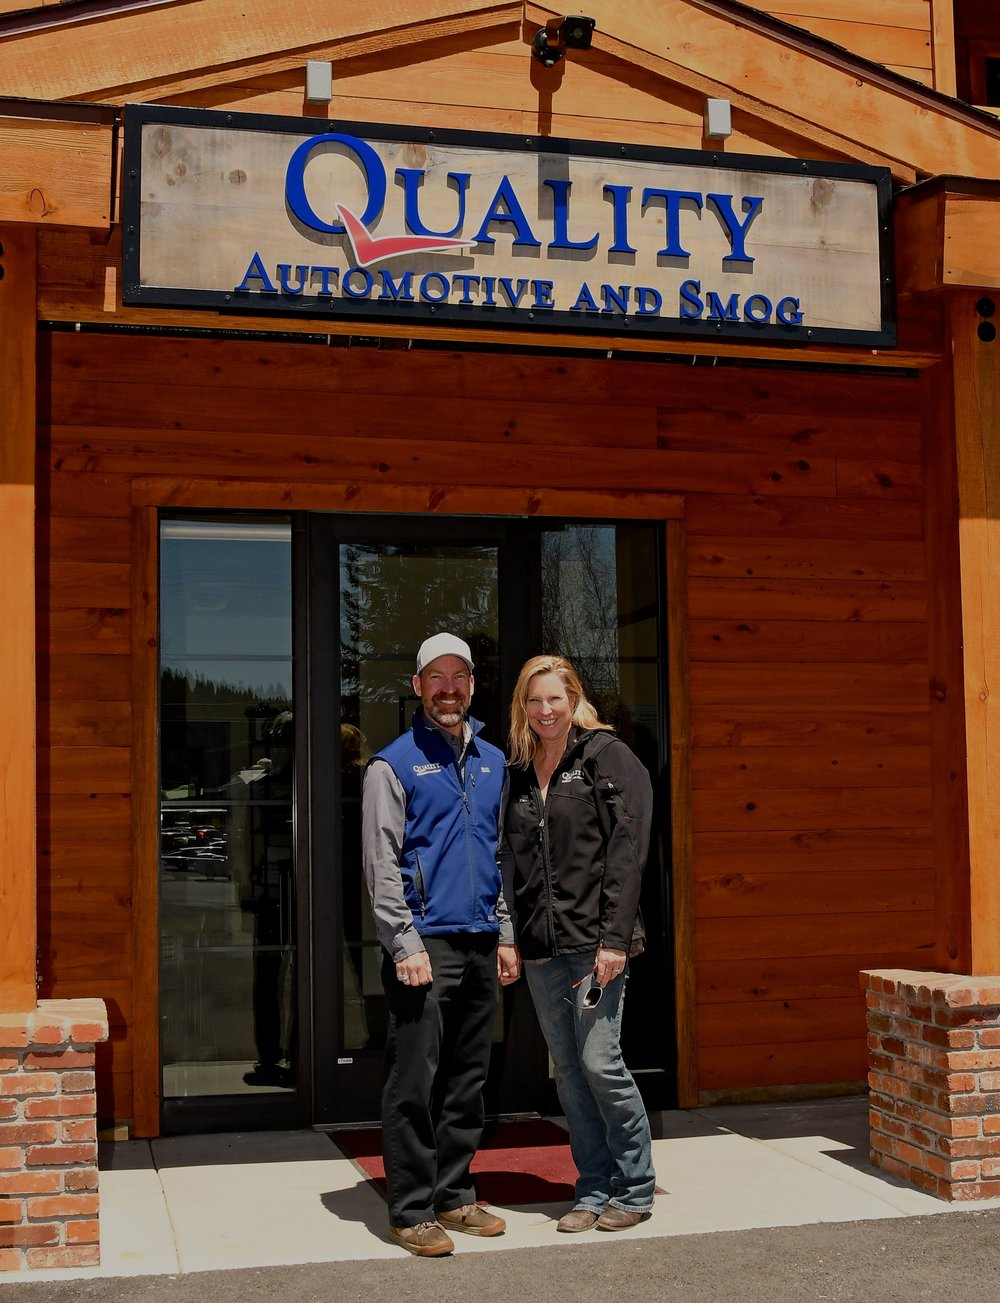 Bill and Sheila Greeno, proud owners of Quality Automotive and Smog.